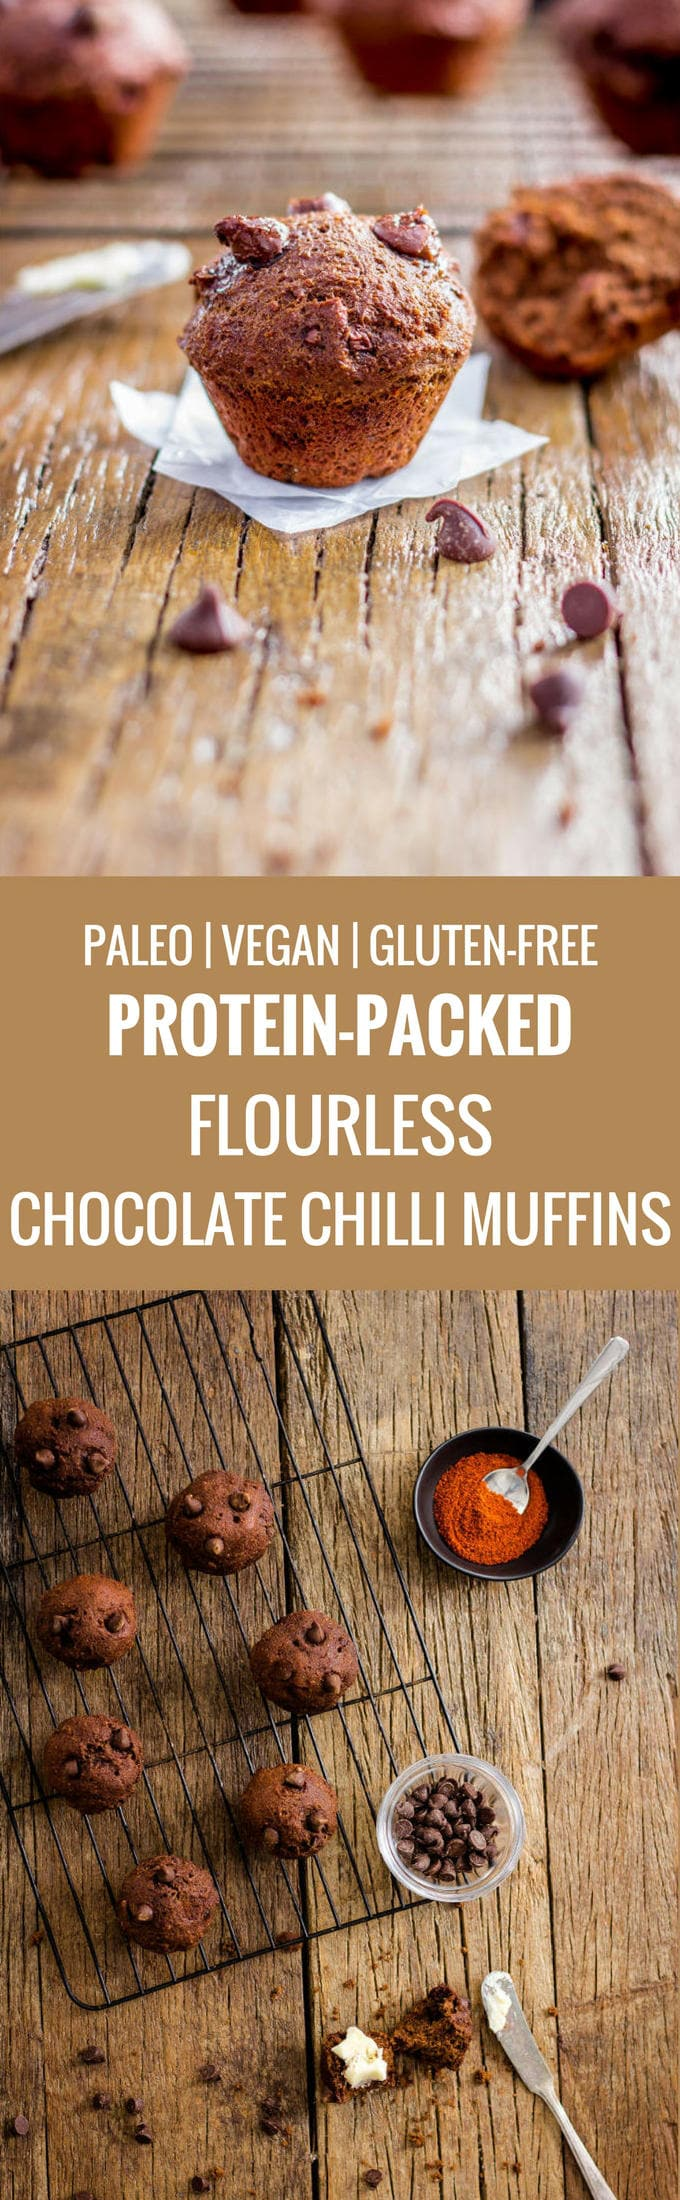 Chocolate Chilli Muffins. An INTENSE double chocolate taste with a little kick. Paleo, vegan, gluten-free!